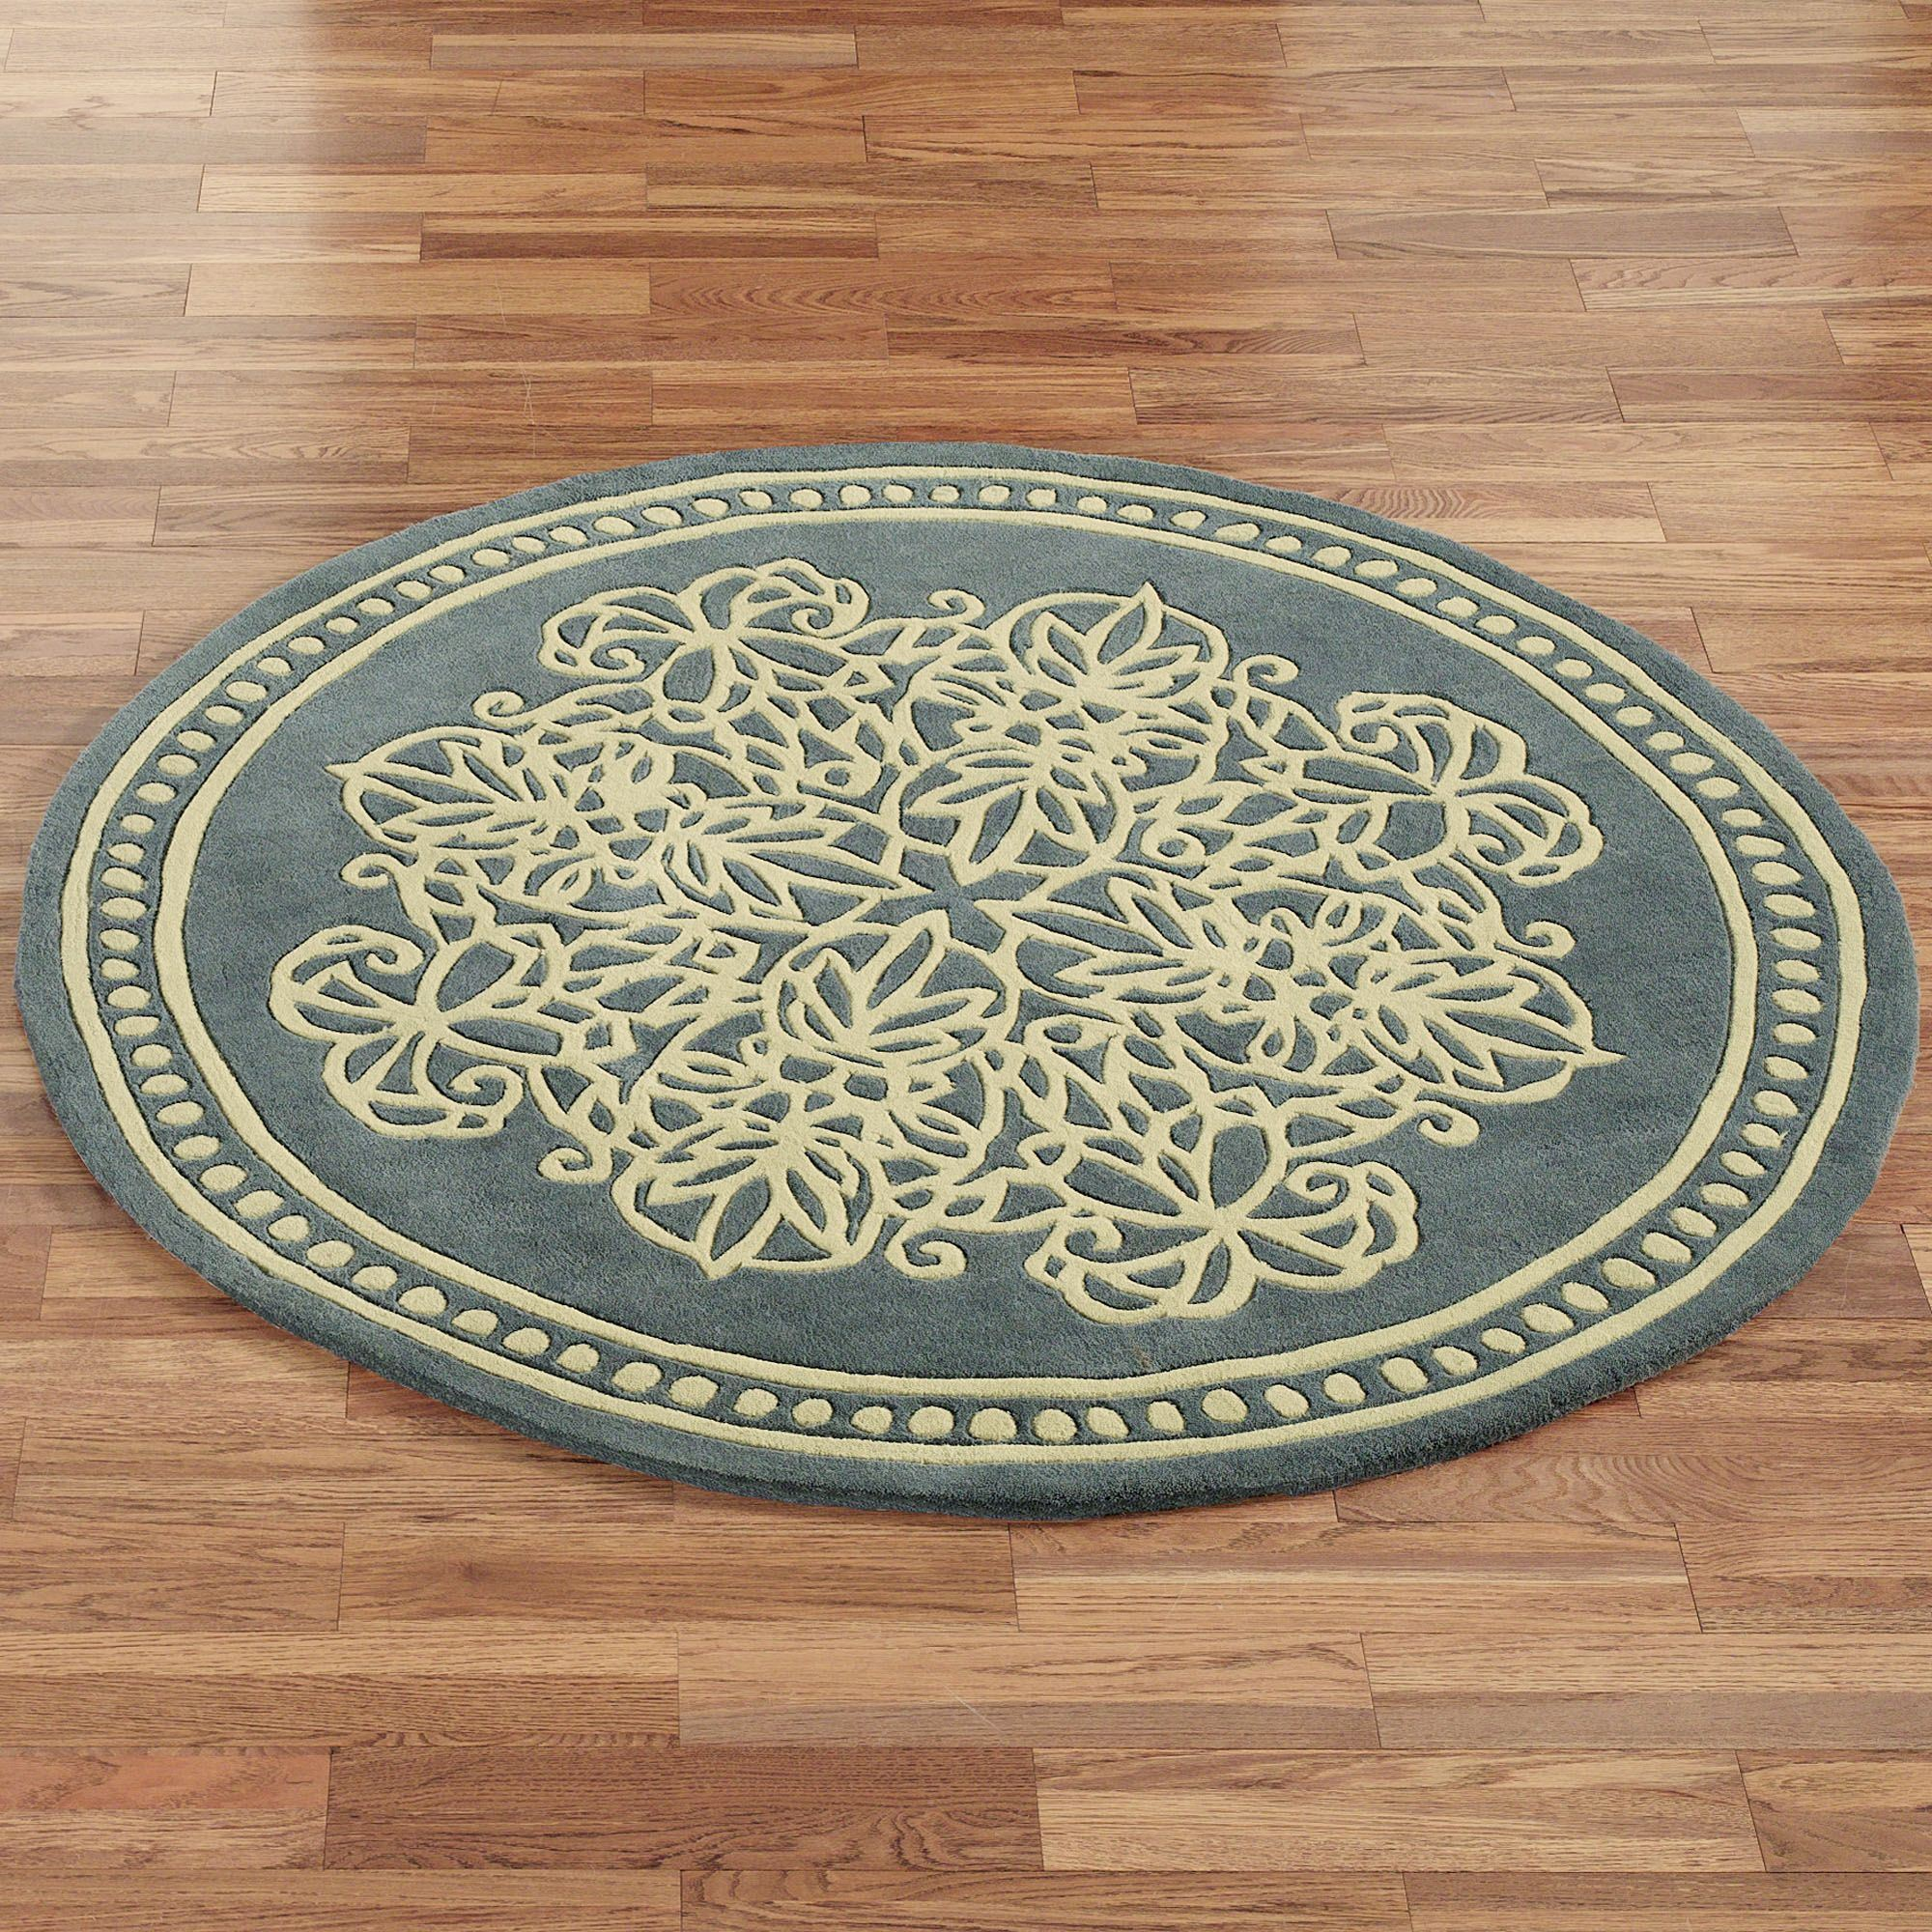 round area rugs lucia lace round rug steel blue 5 round GGQUAOS